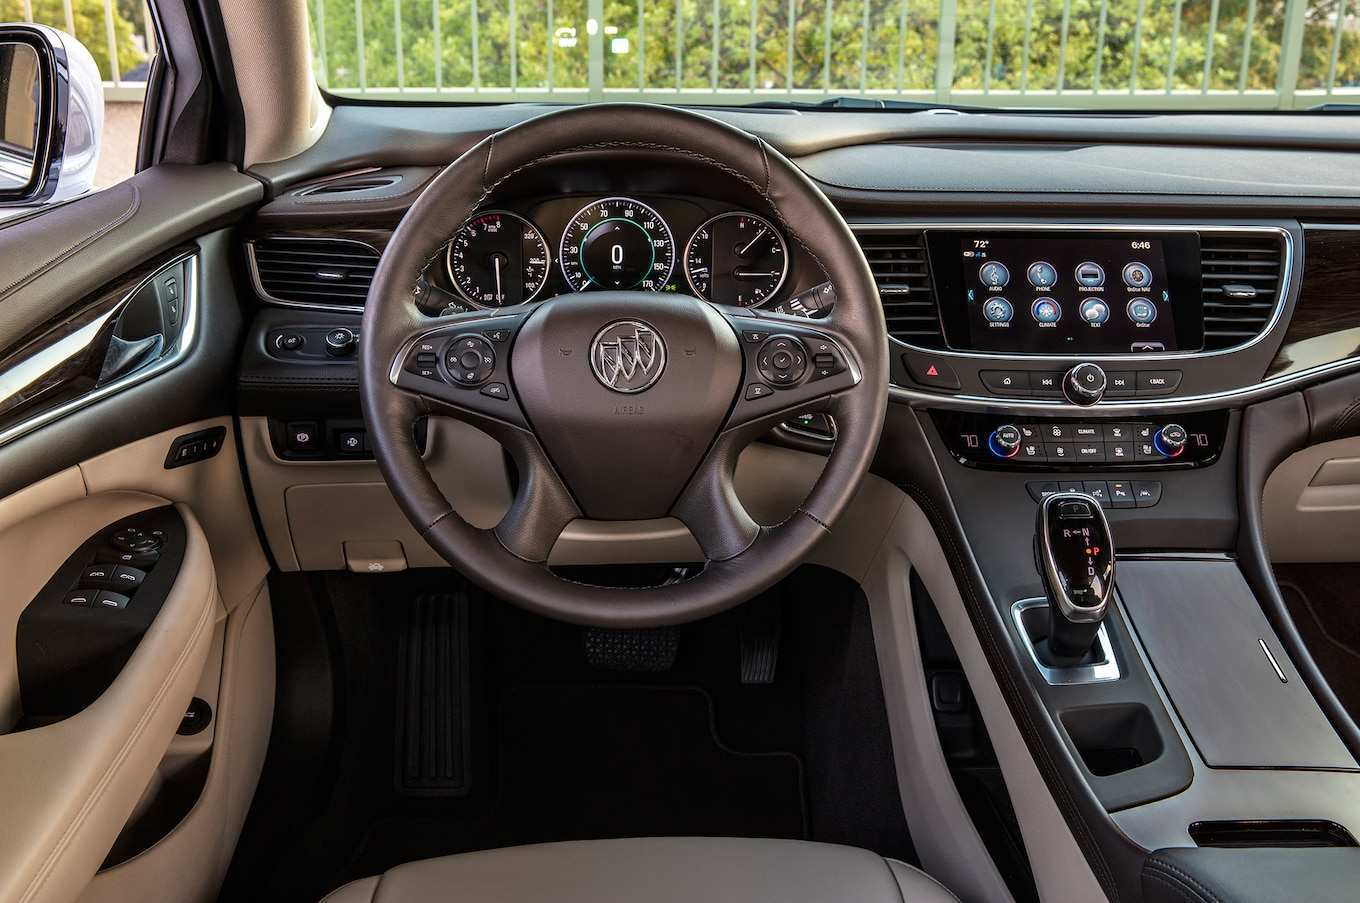 29 All New Best Buick Lacrosse 2019 Overview Spy Shoot with Best Buick Lacrosse 2019 Overview